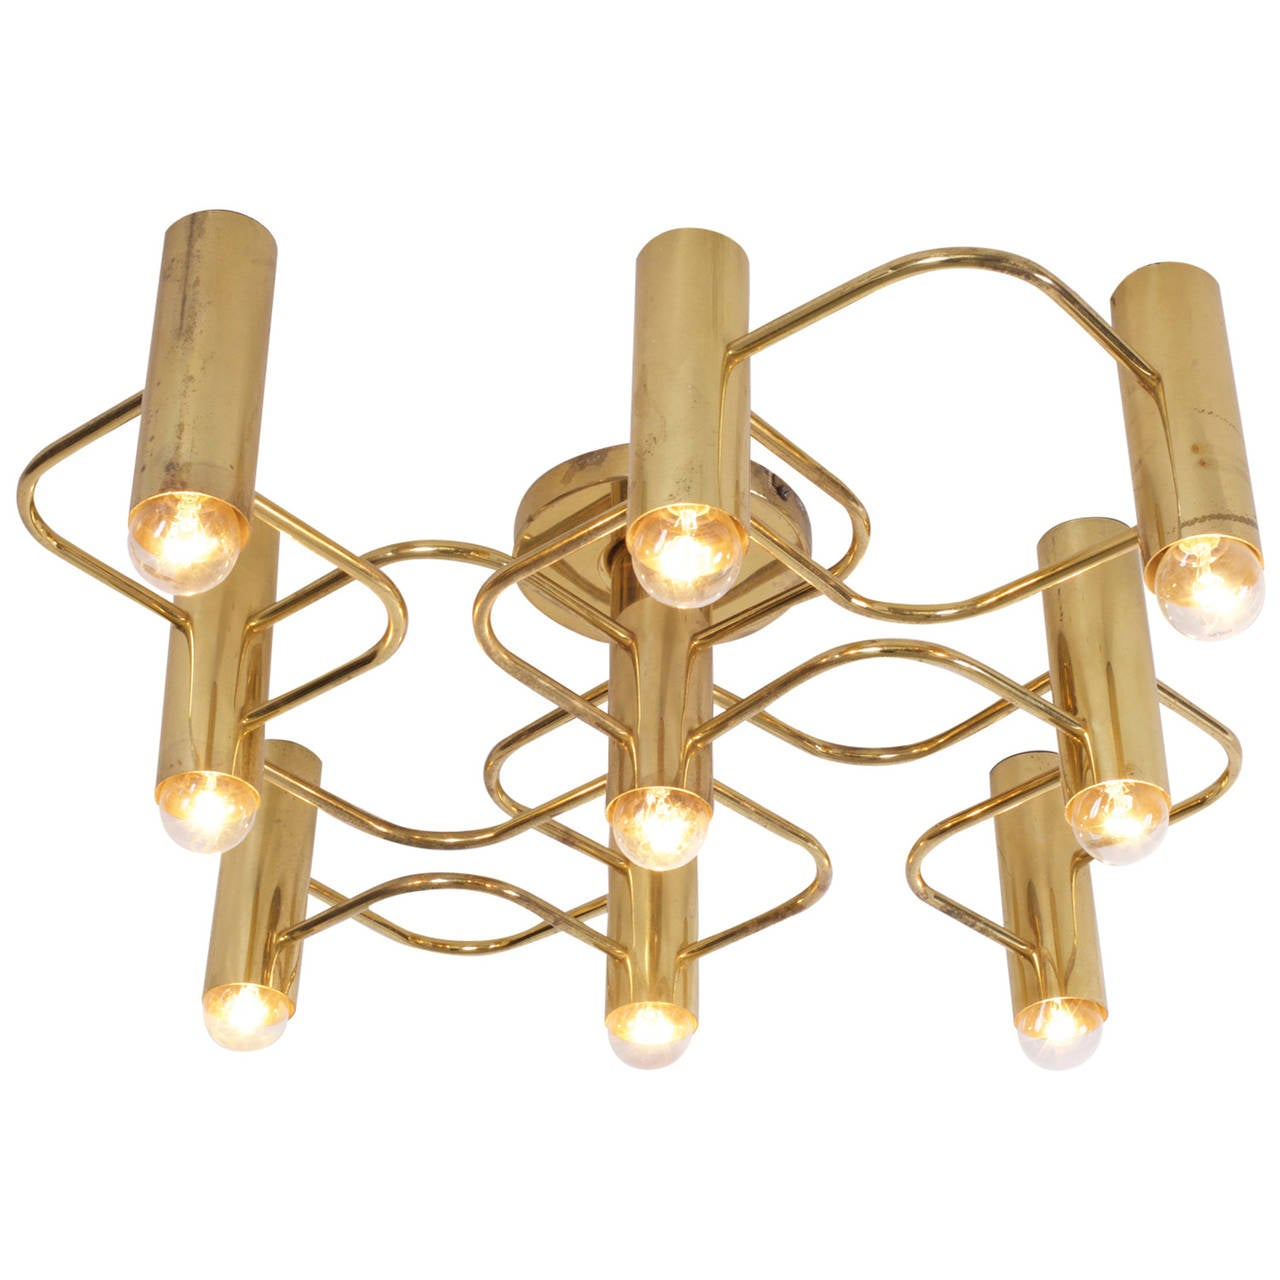 Brass Chandelier Ceiling Lights : Brass nine light flush mount wall or ceiling lamp by leola